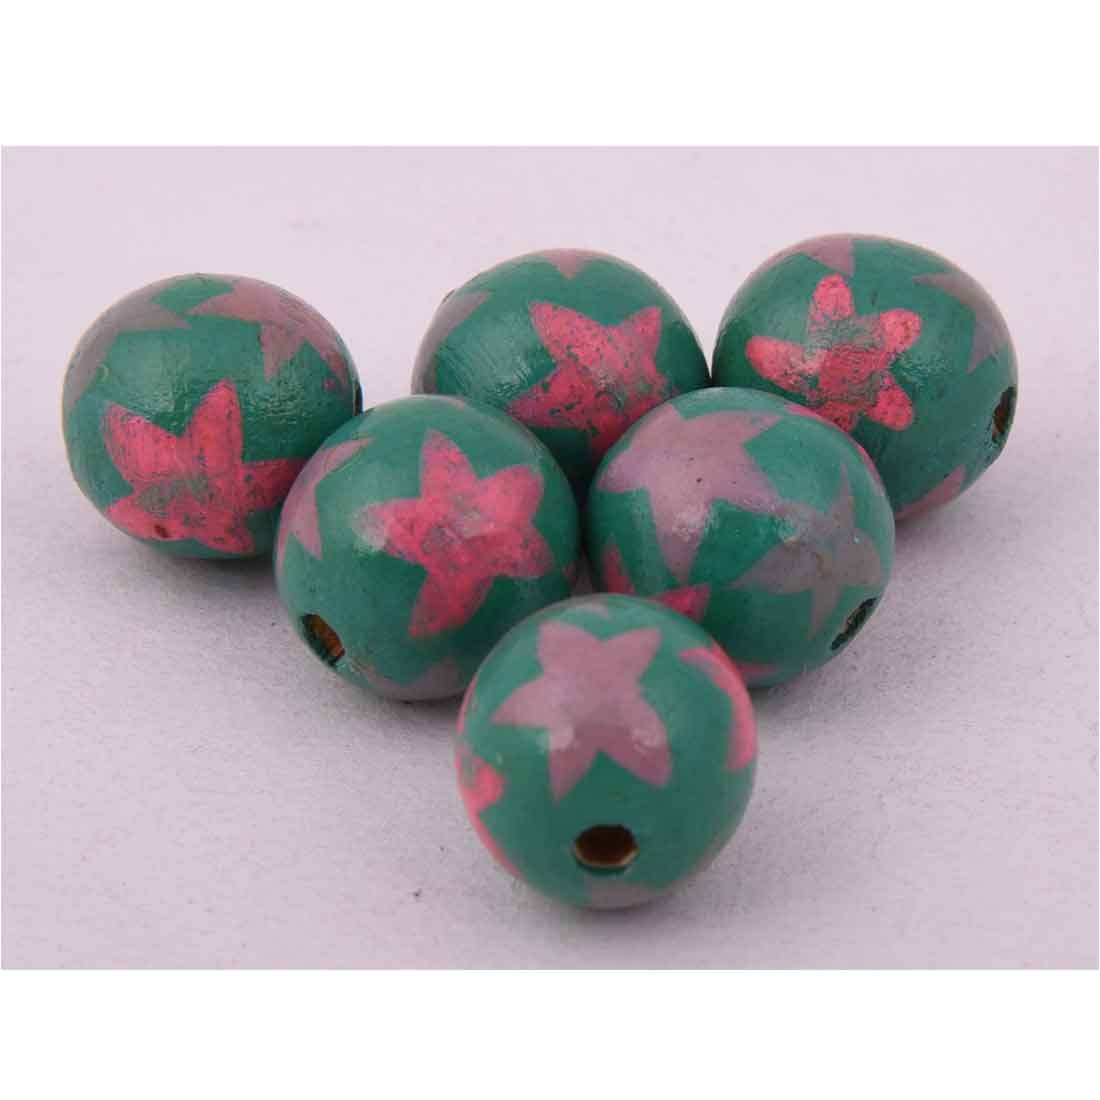 Beads India 1700083 Handcrafted Wooden Beads/Discounts Above 500 pcs